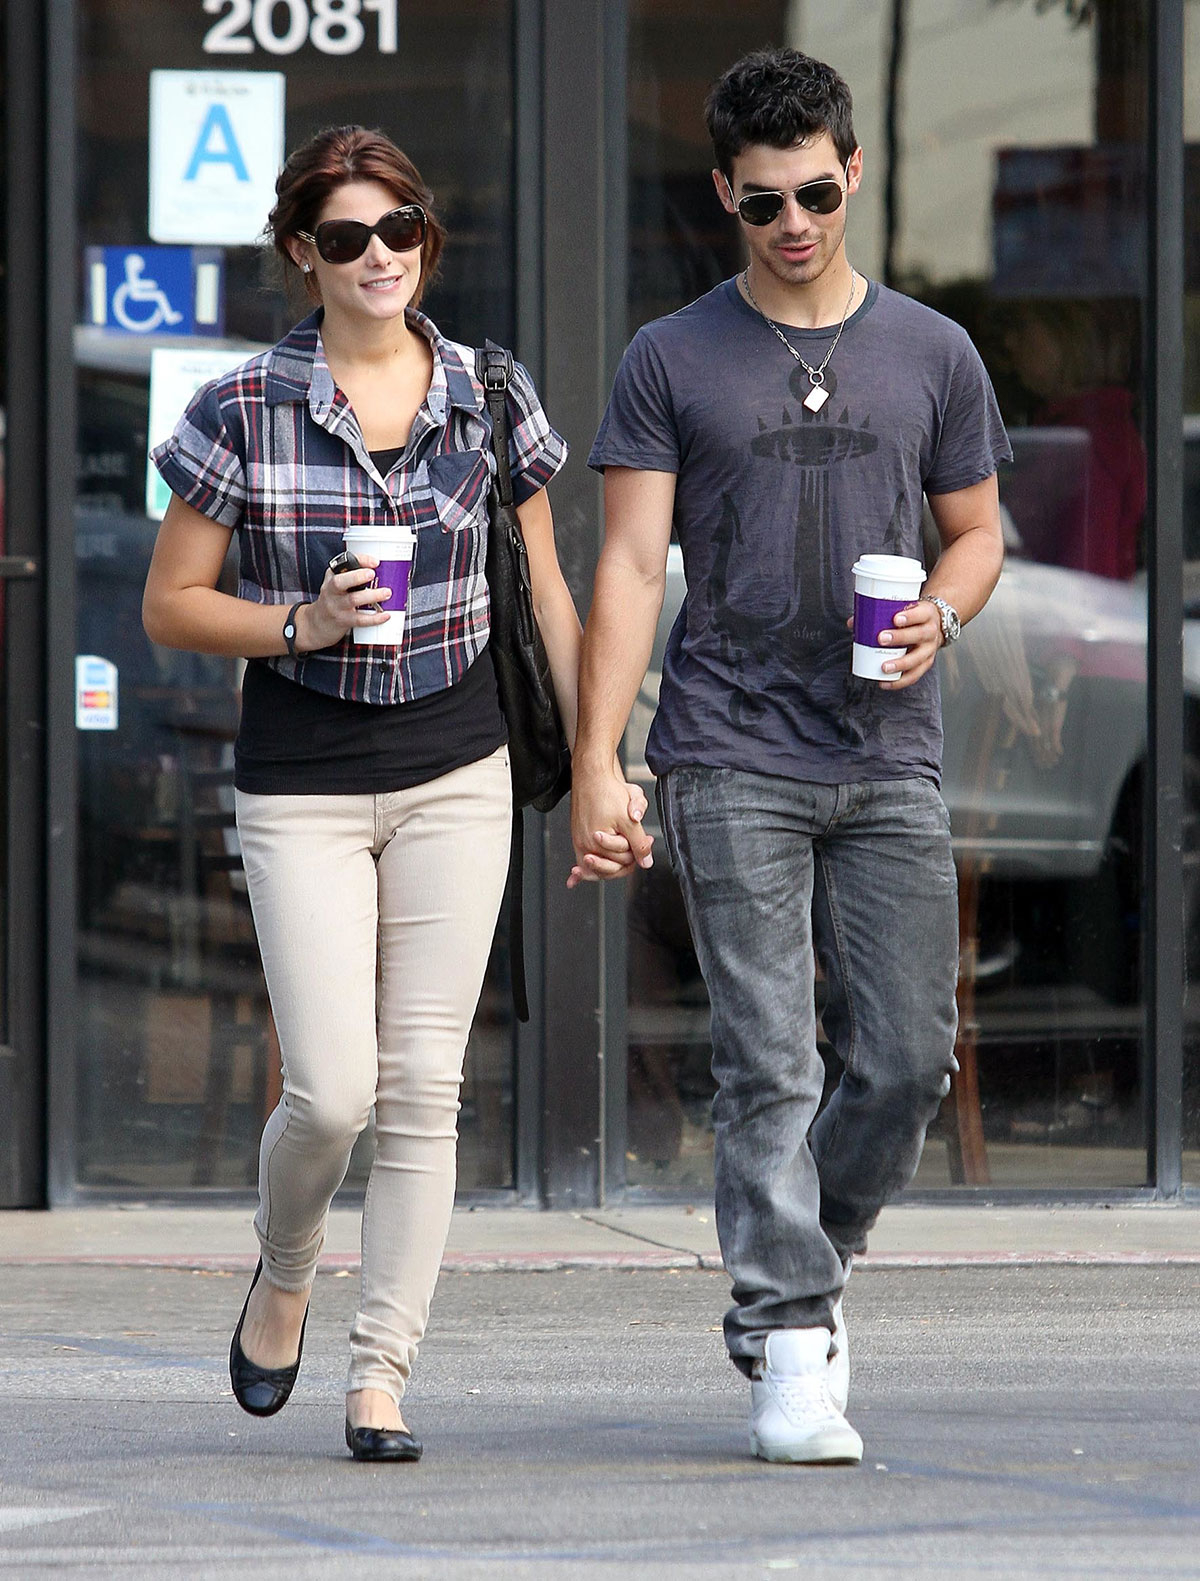 Sep 29 2010 ASHLEY GREENE and JOE JONAS can't keep their eyes or hands off each other, while getting their caffeine fix at a Coffee Bean in Los Feliz, CA